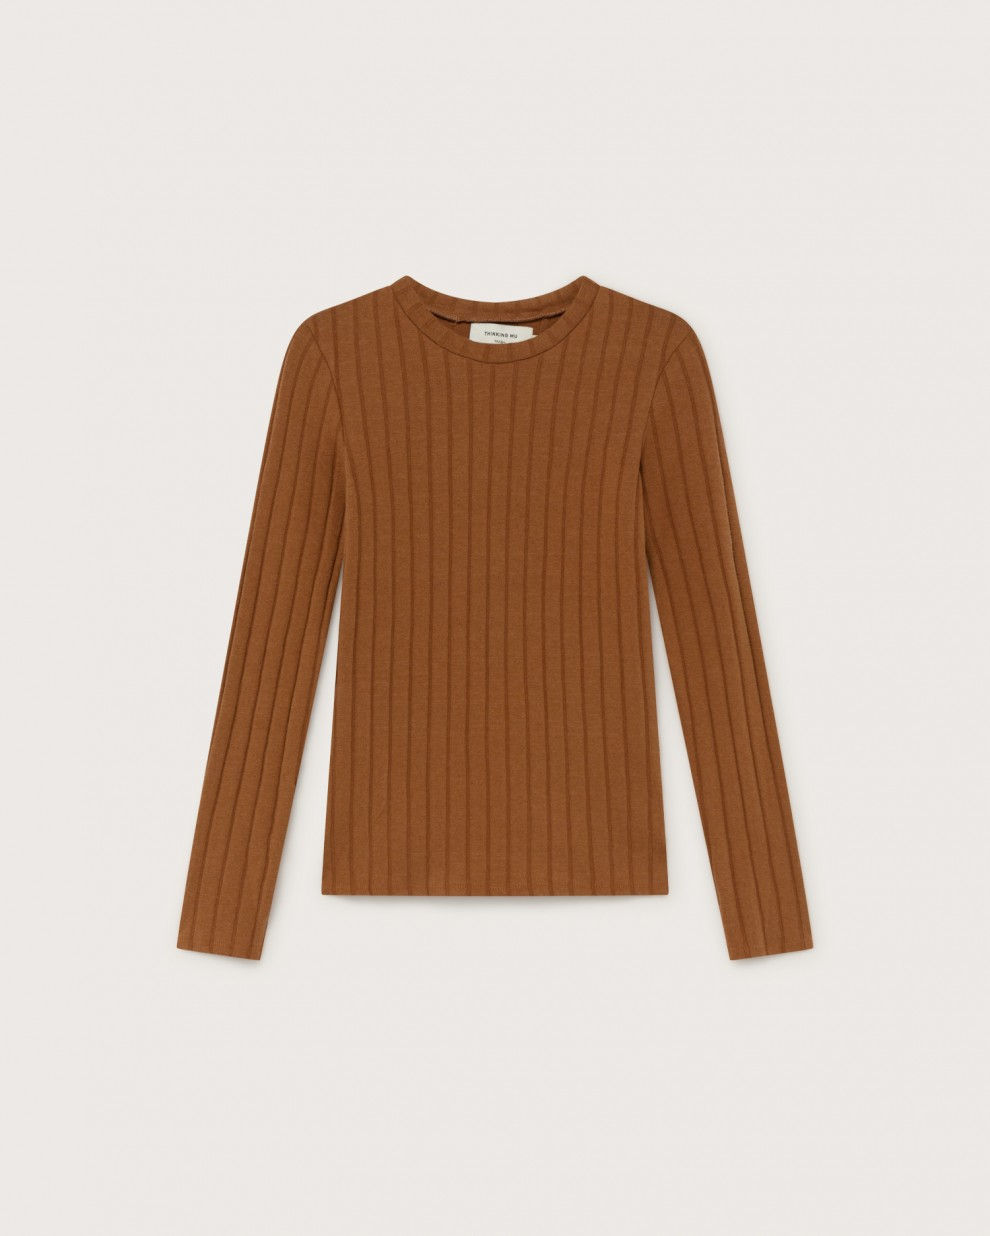 CARAMEL TRASH ALPAN L/S TOP